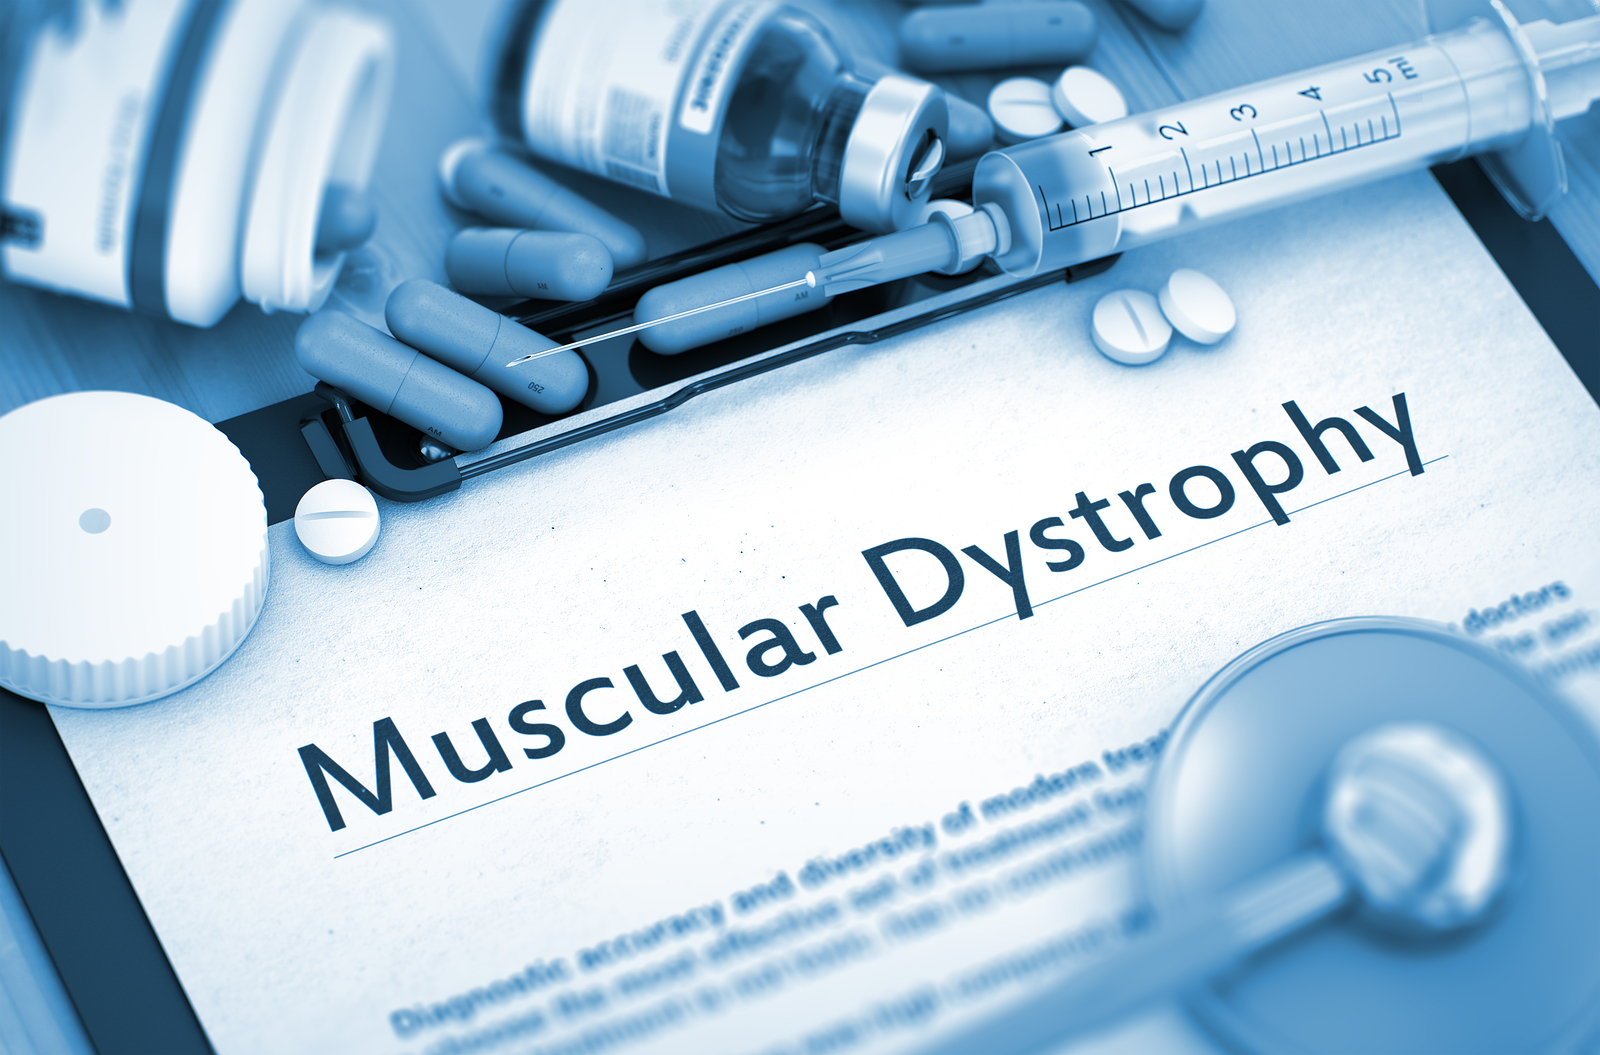 Muscular Dystrophy & Marijuana Information: Treat Muscular Dystrophy With Cannabis